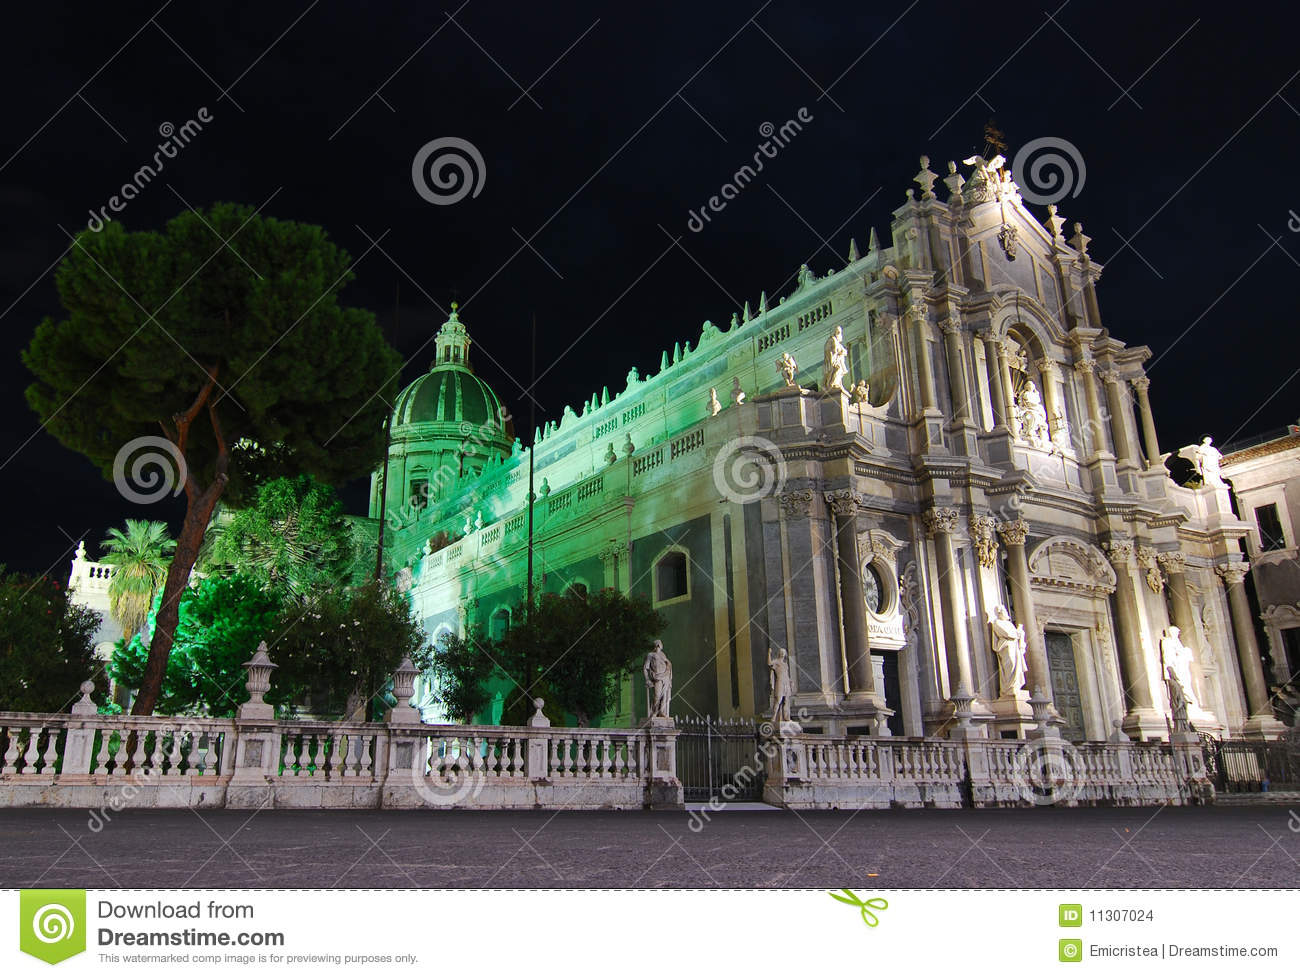 Catania-Kathedrale/Sizilien